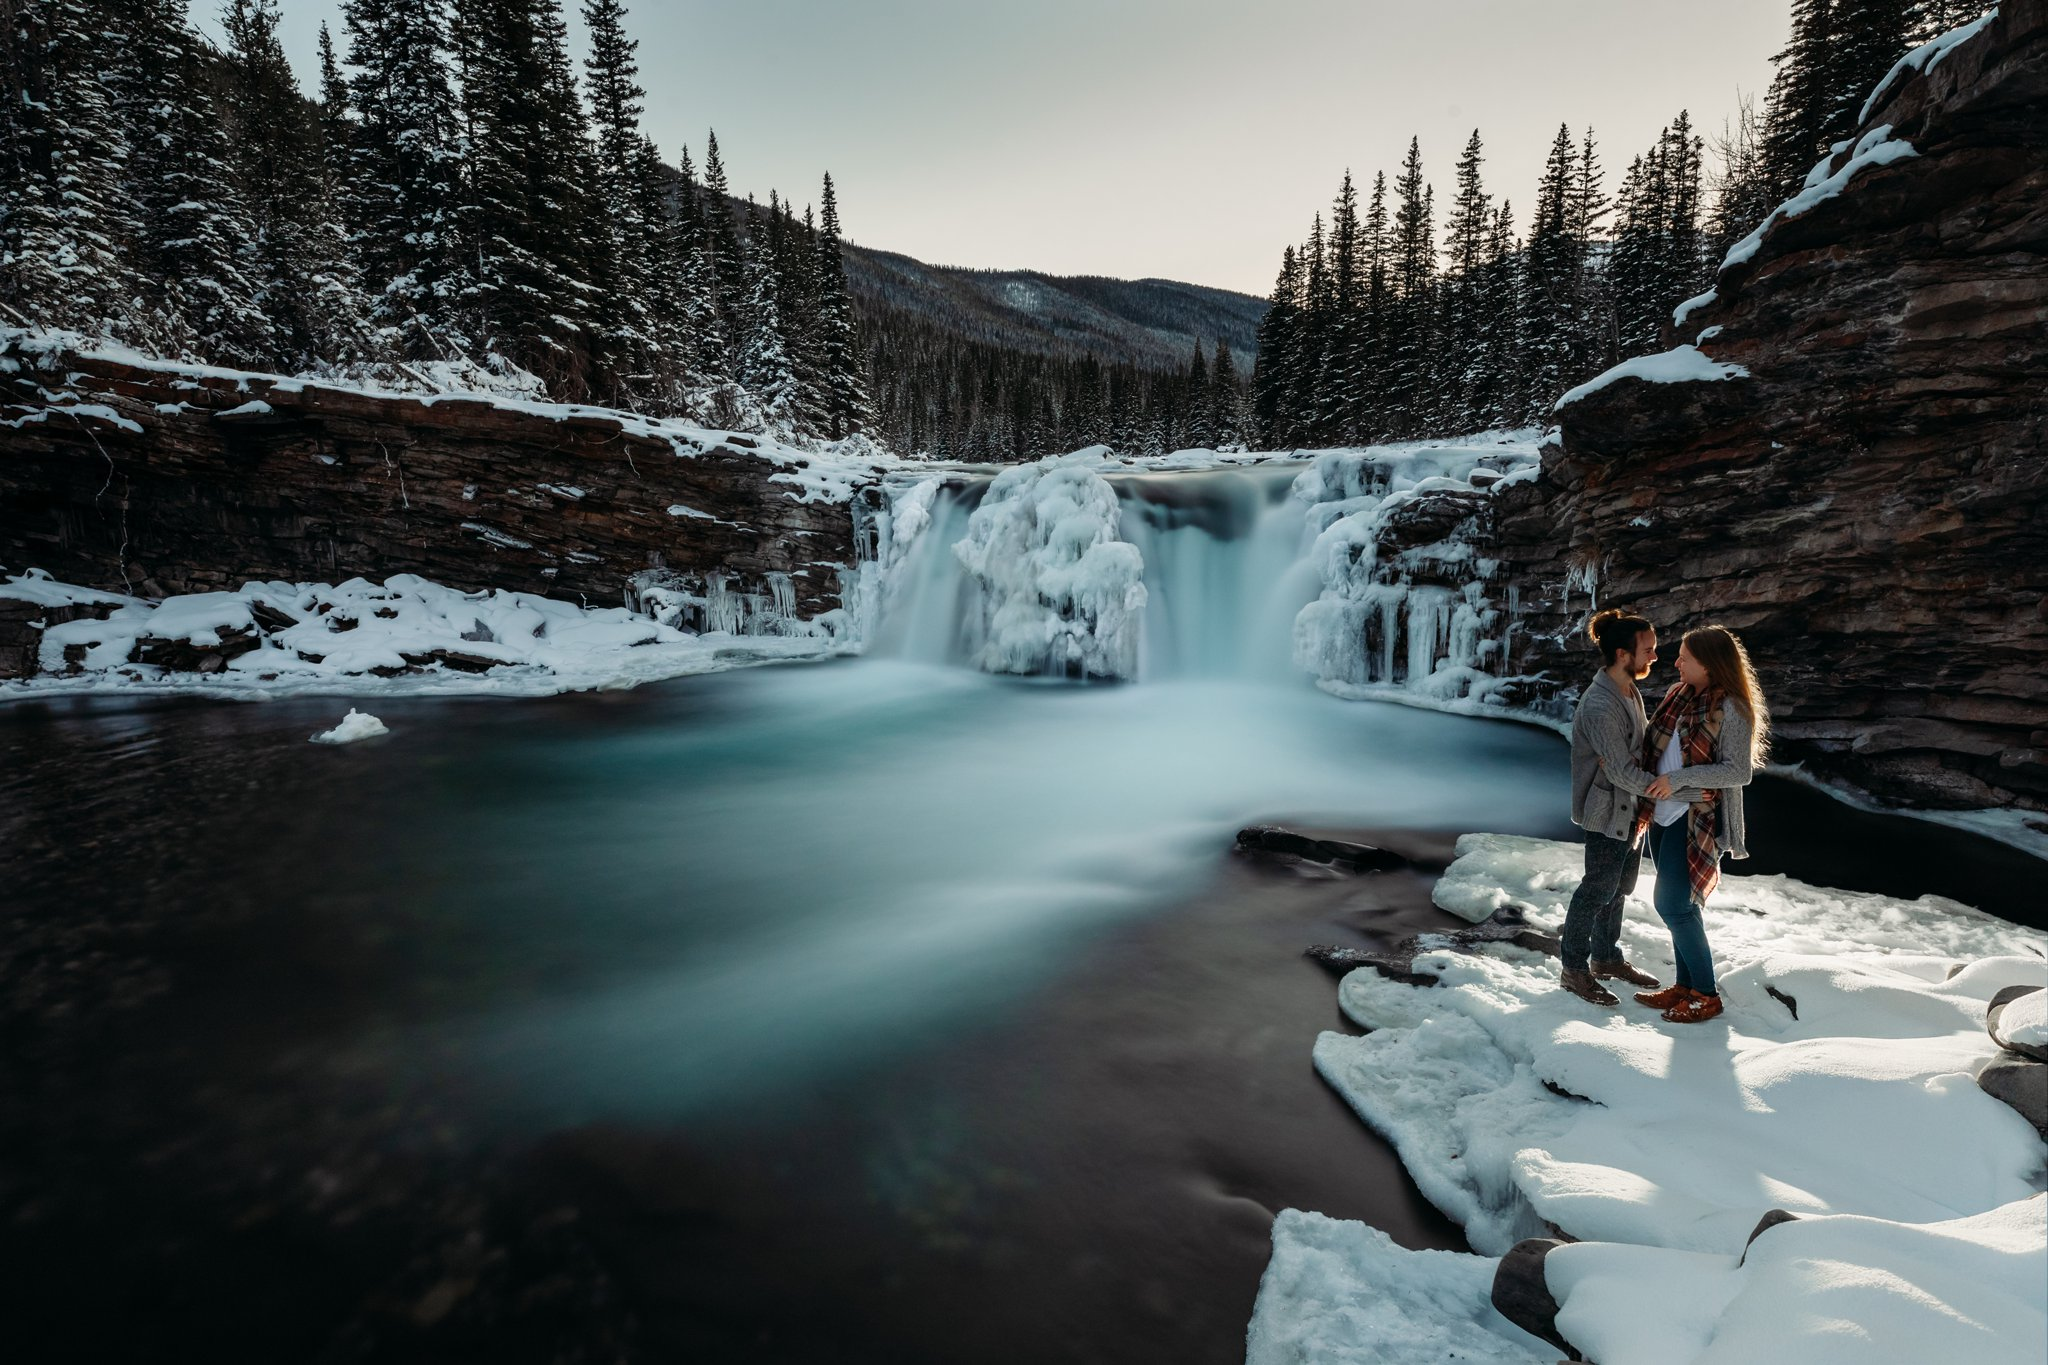 AshleyDaphnePhotography Calgary Photographer Wedding Engagement Sheep River Provincial Park Photos Kananskis Rocky Mountain Canmore Photographer_0082.jpg